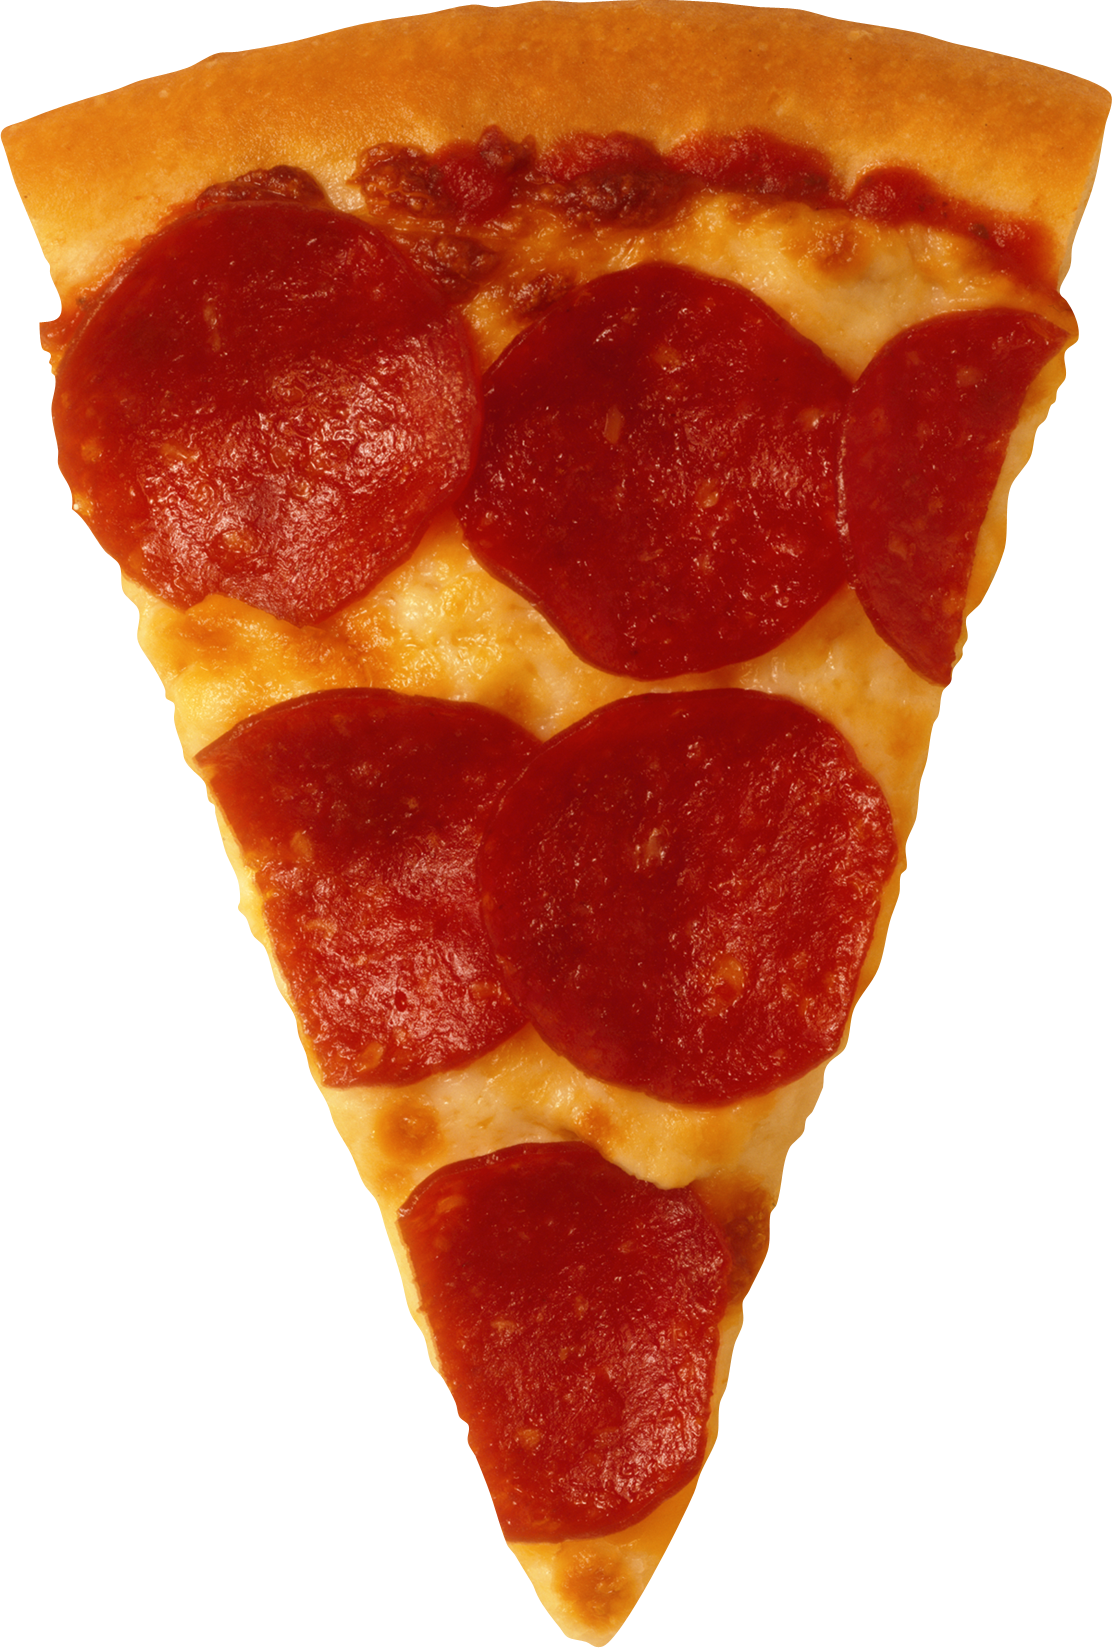 Pizza clipart sliced pizza. Png images free download